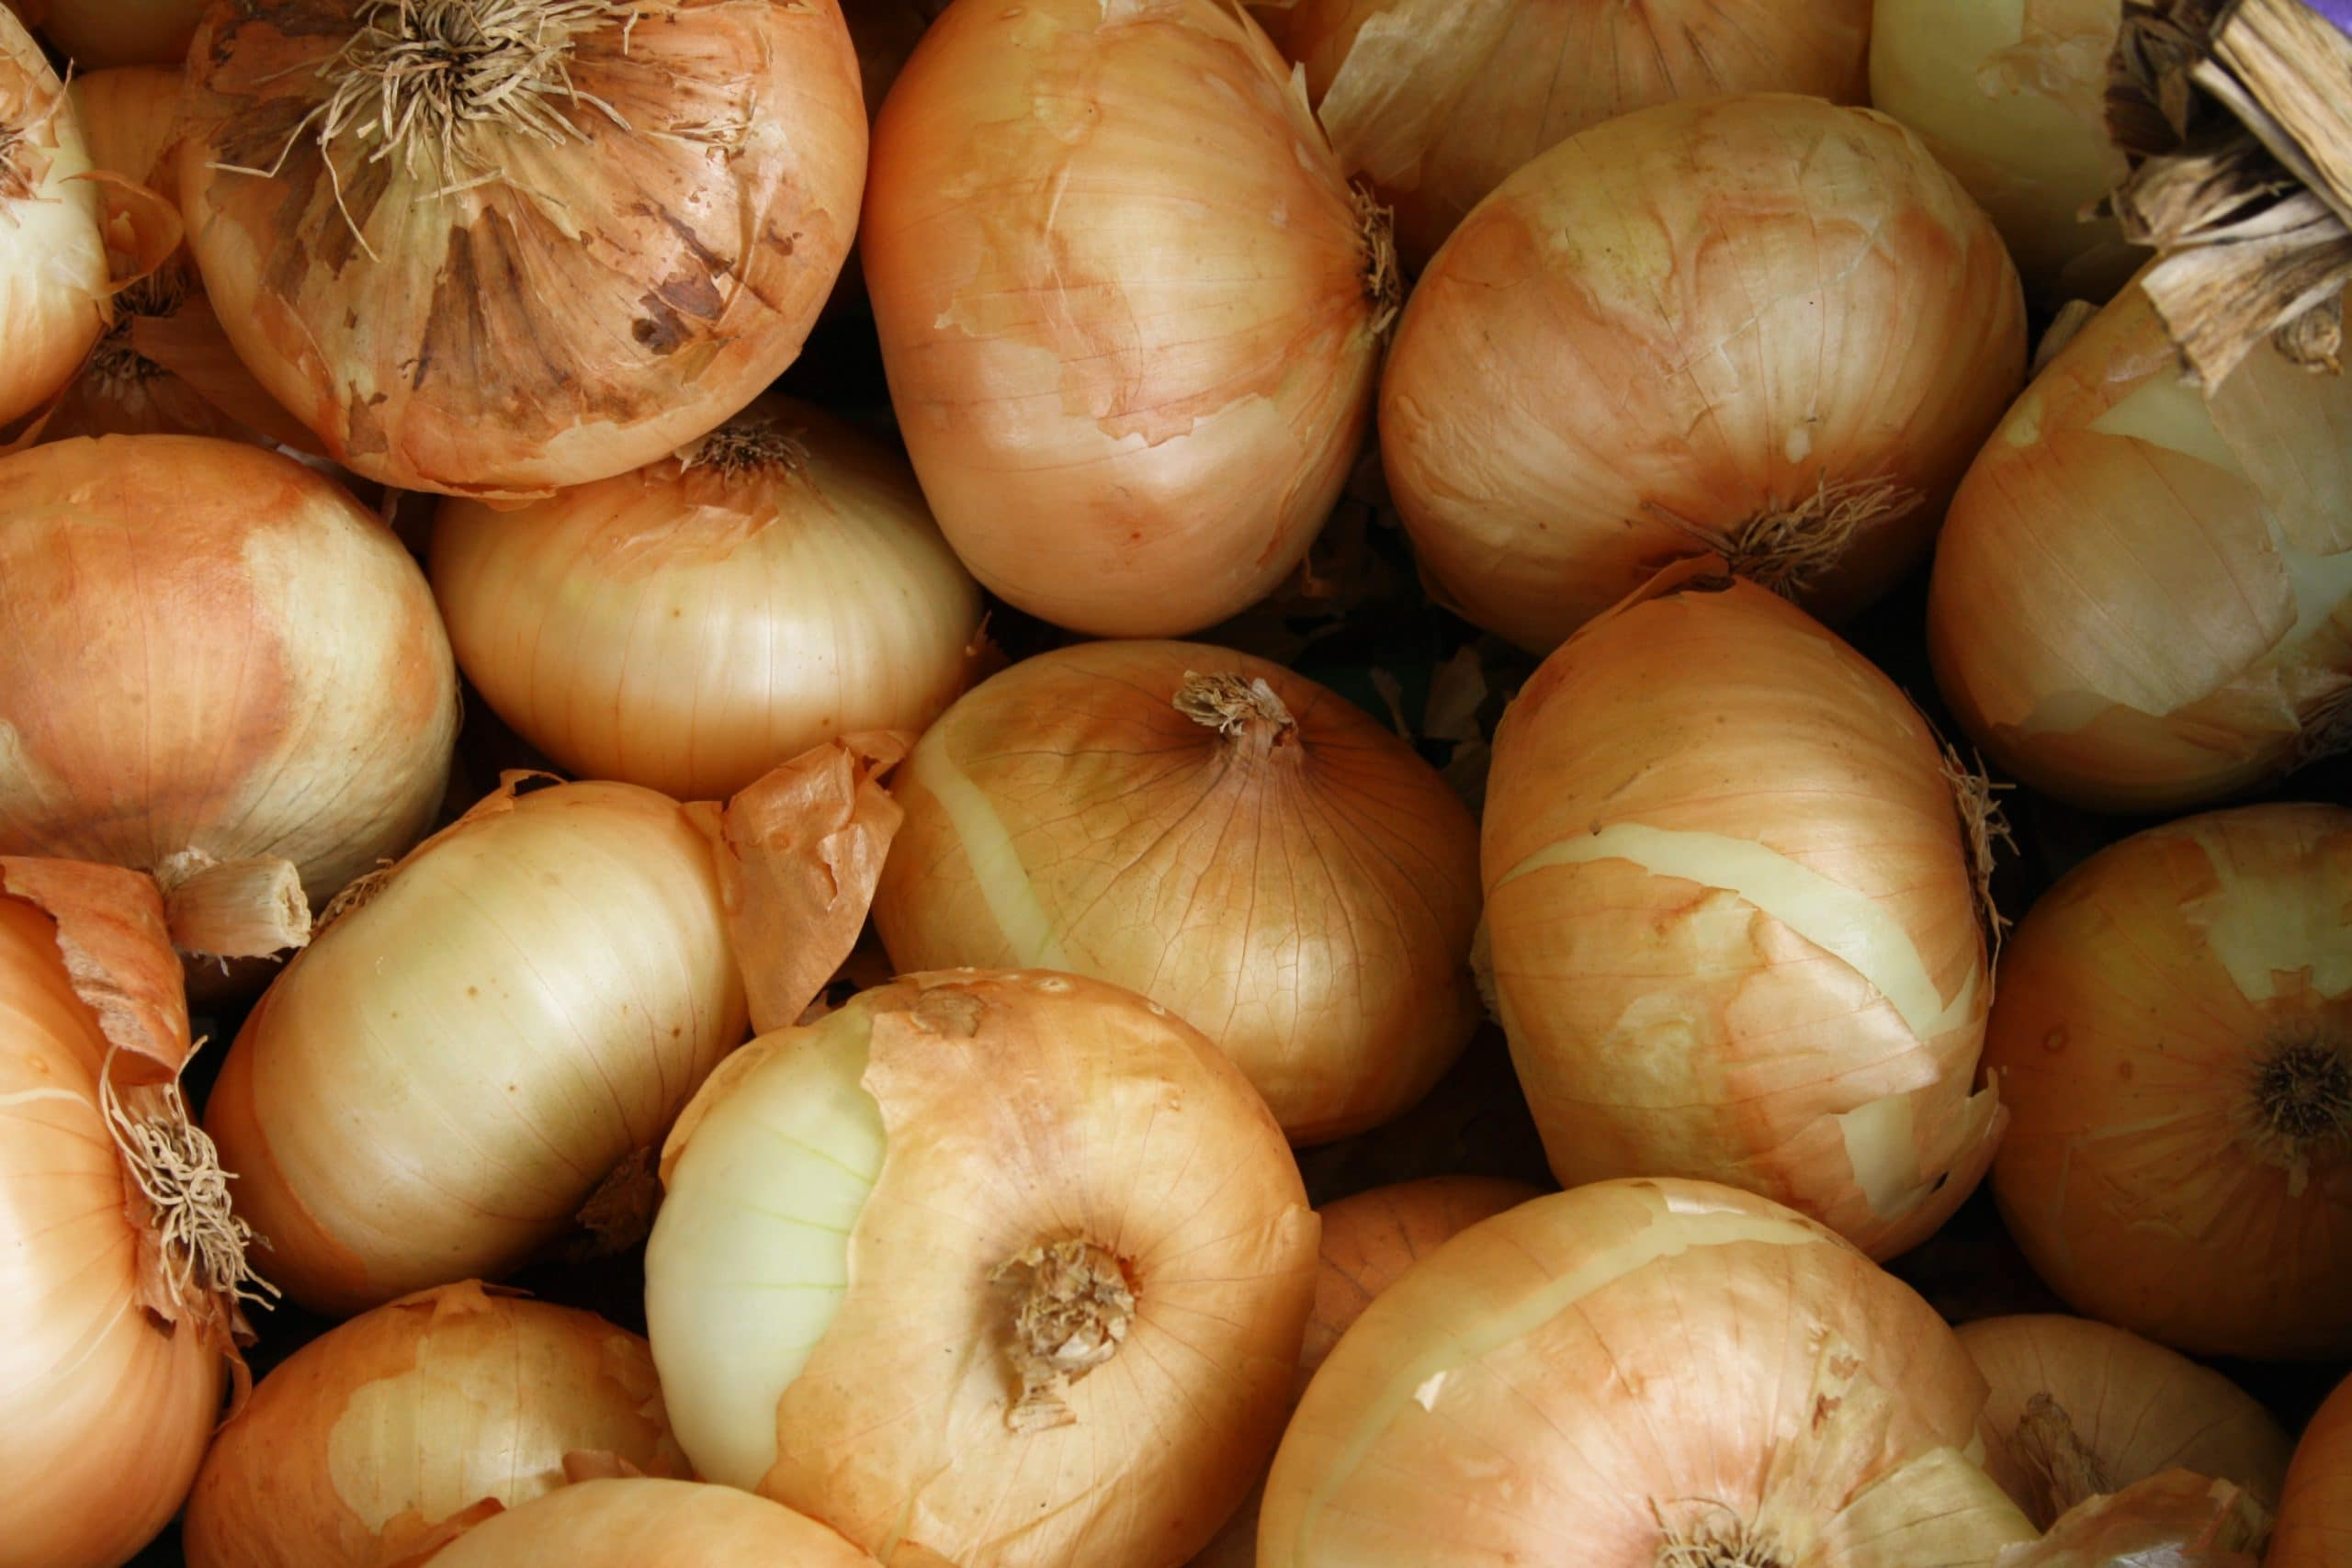 How to tell if a yellow onion is bad